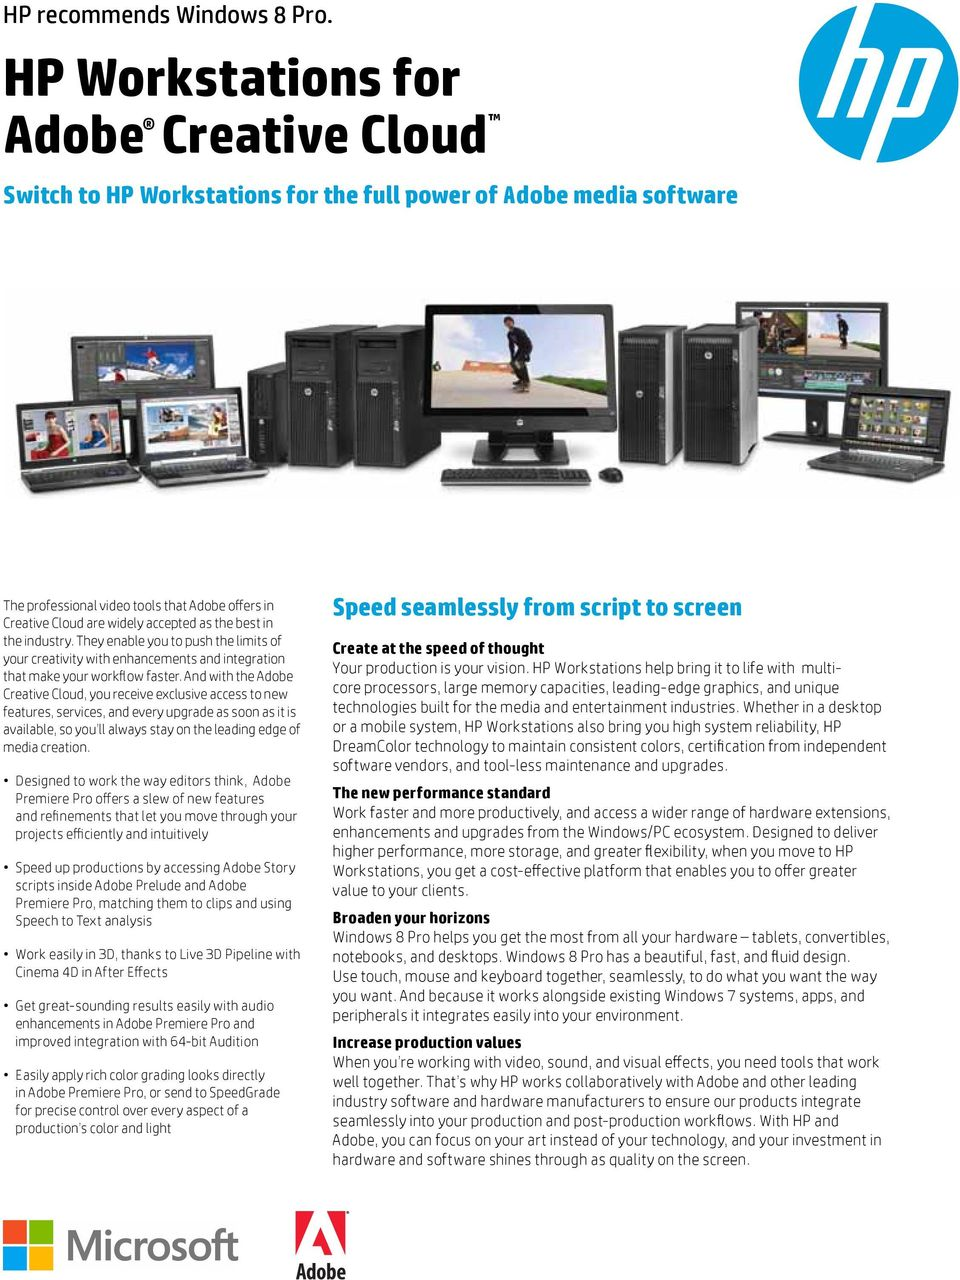 HP Workstations for Adobe Creative Cloud - PDF